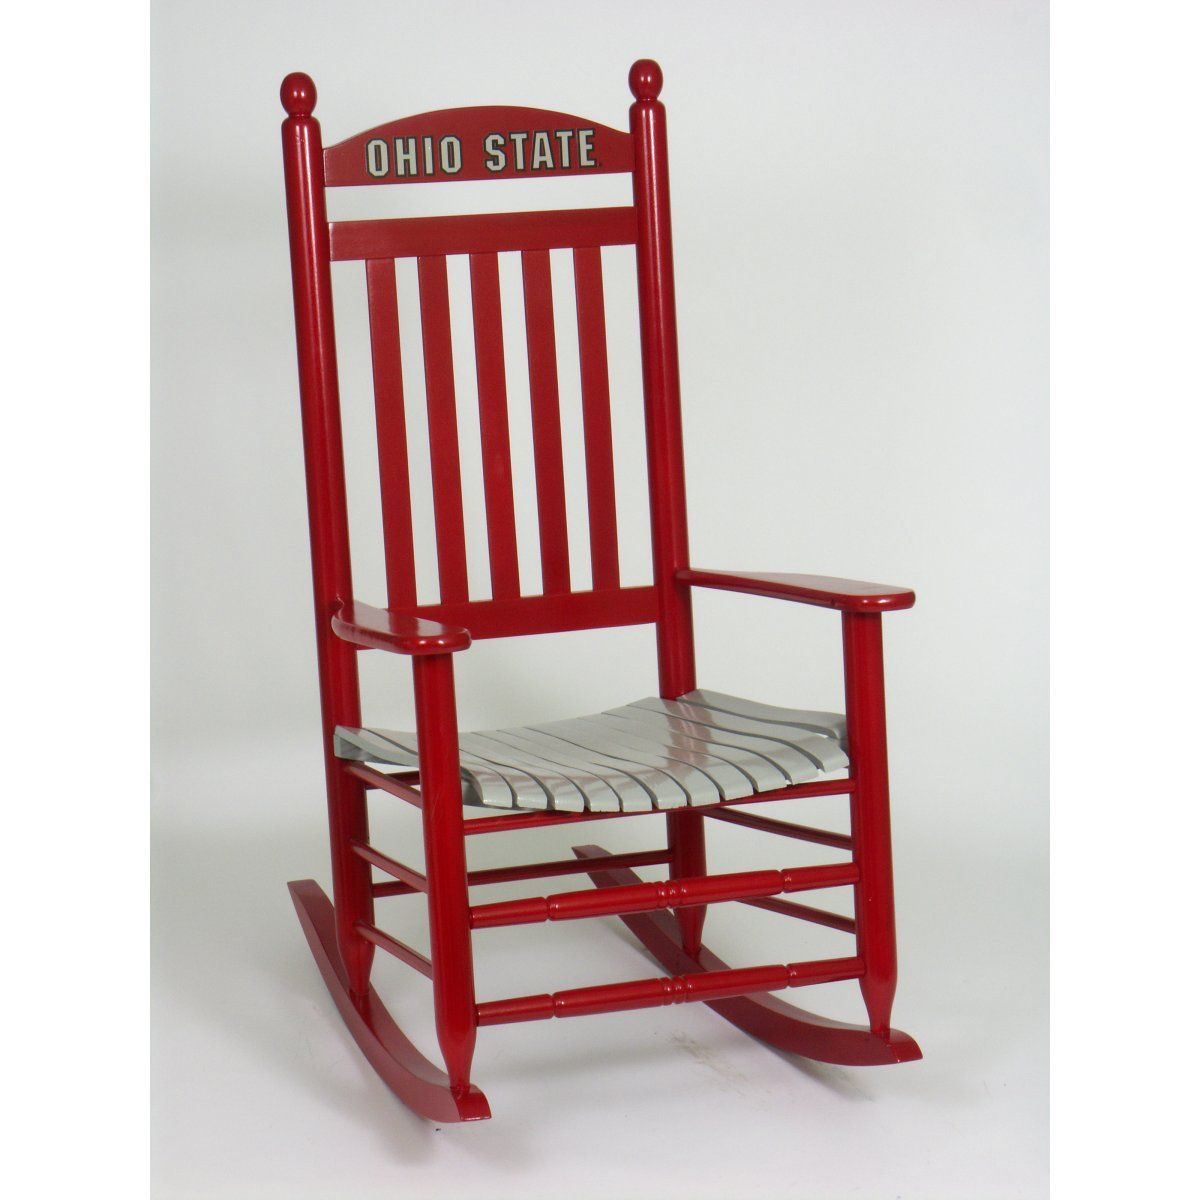 OHIO STATE ROCKING CHAIR   Indoor Rocking Chairs At Rocking Chairs